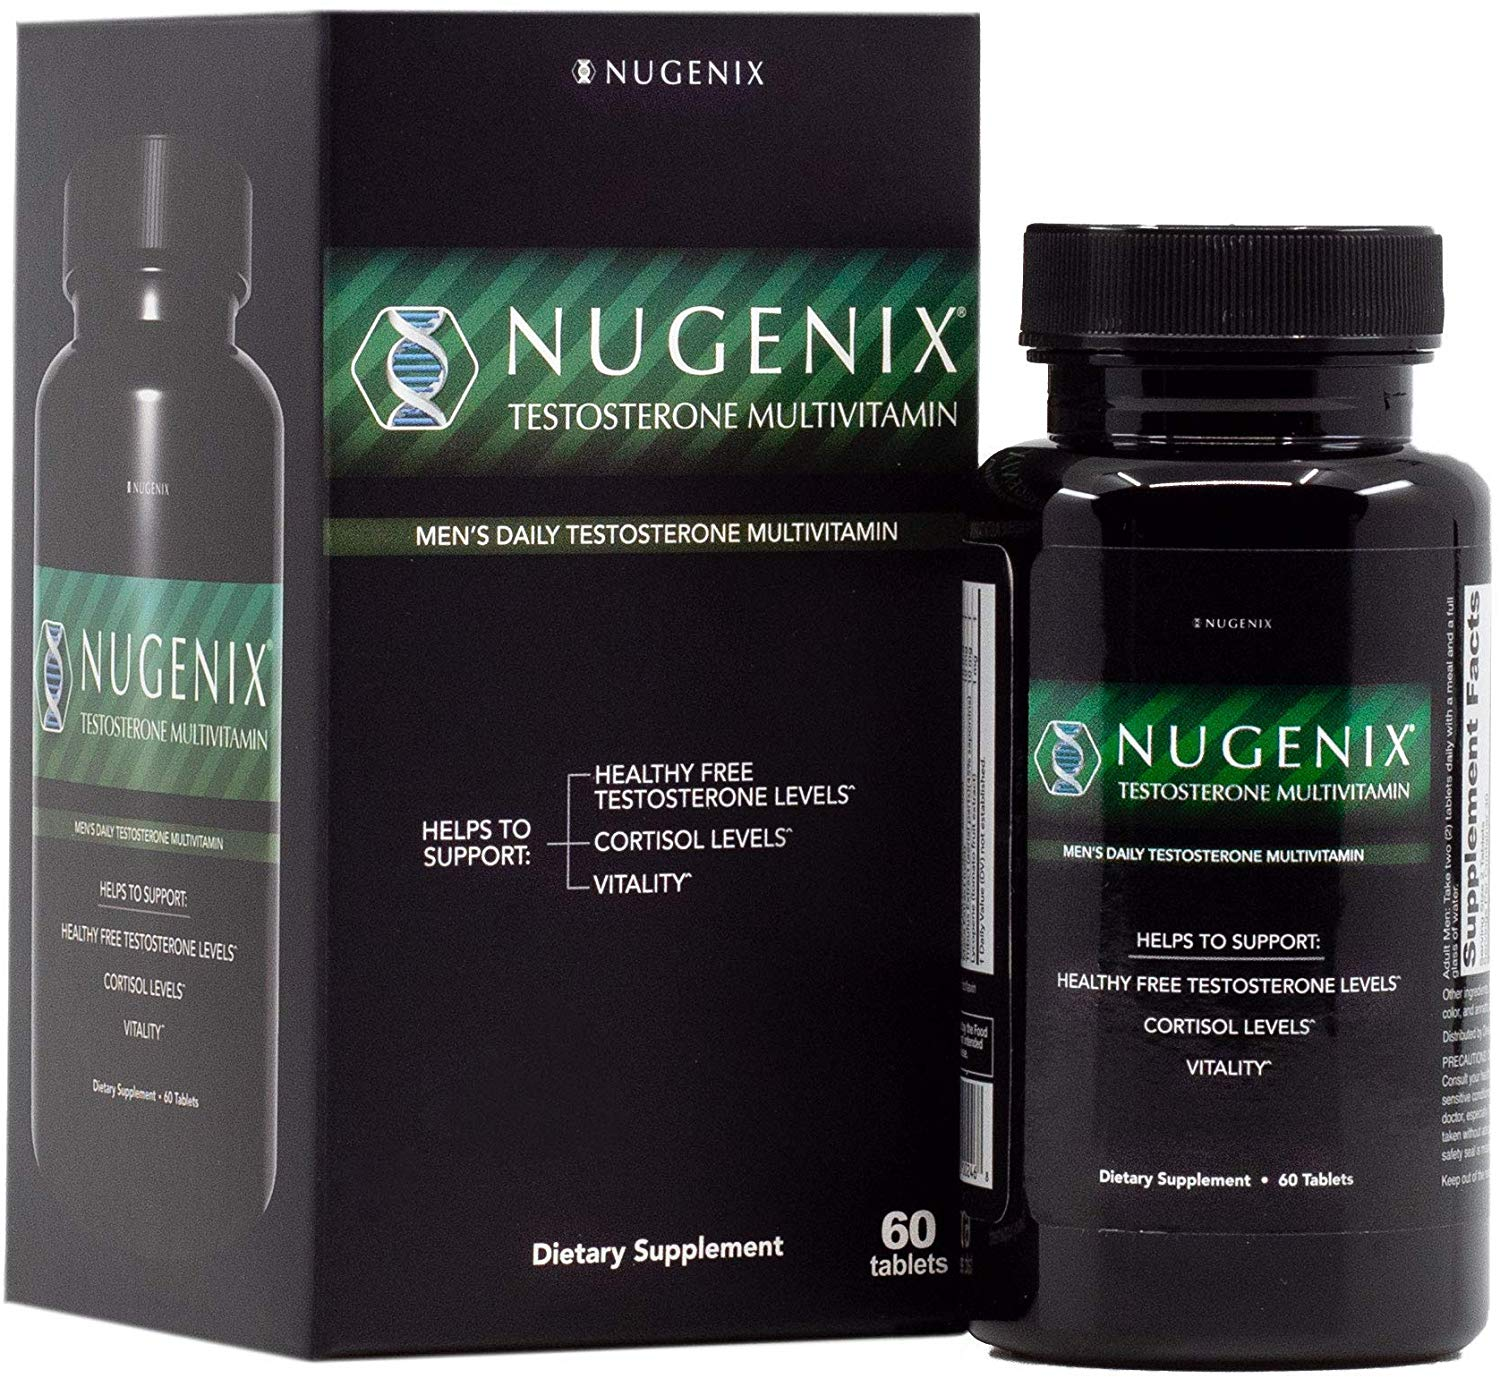 Nugenix Men's Daily Testosterone package